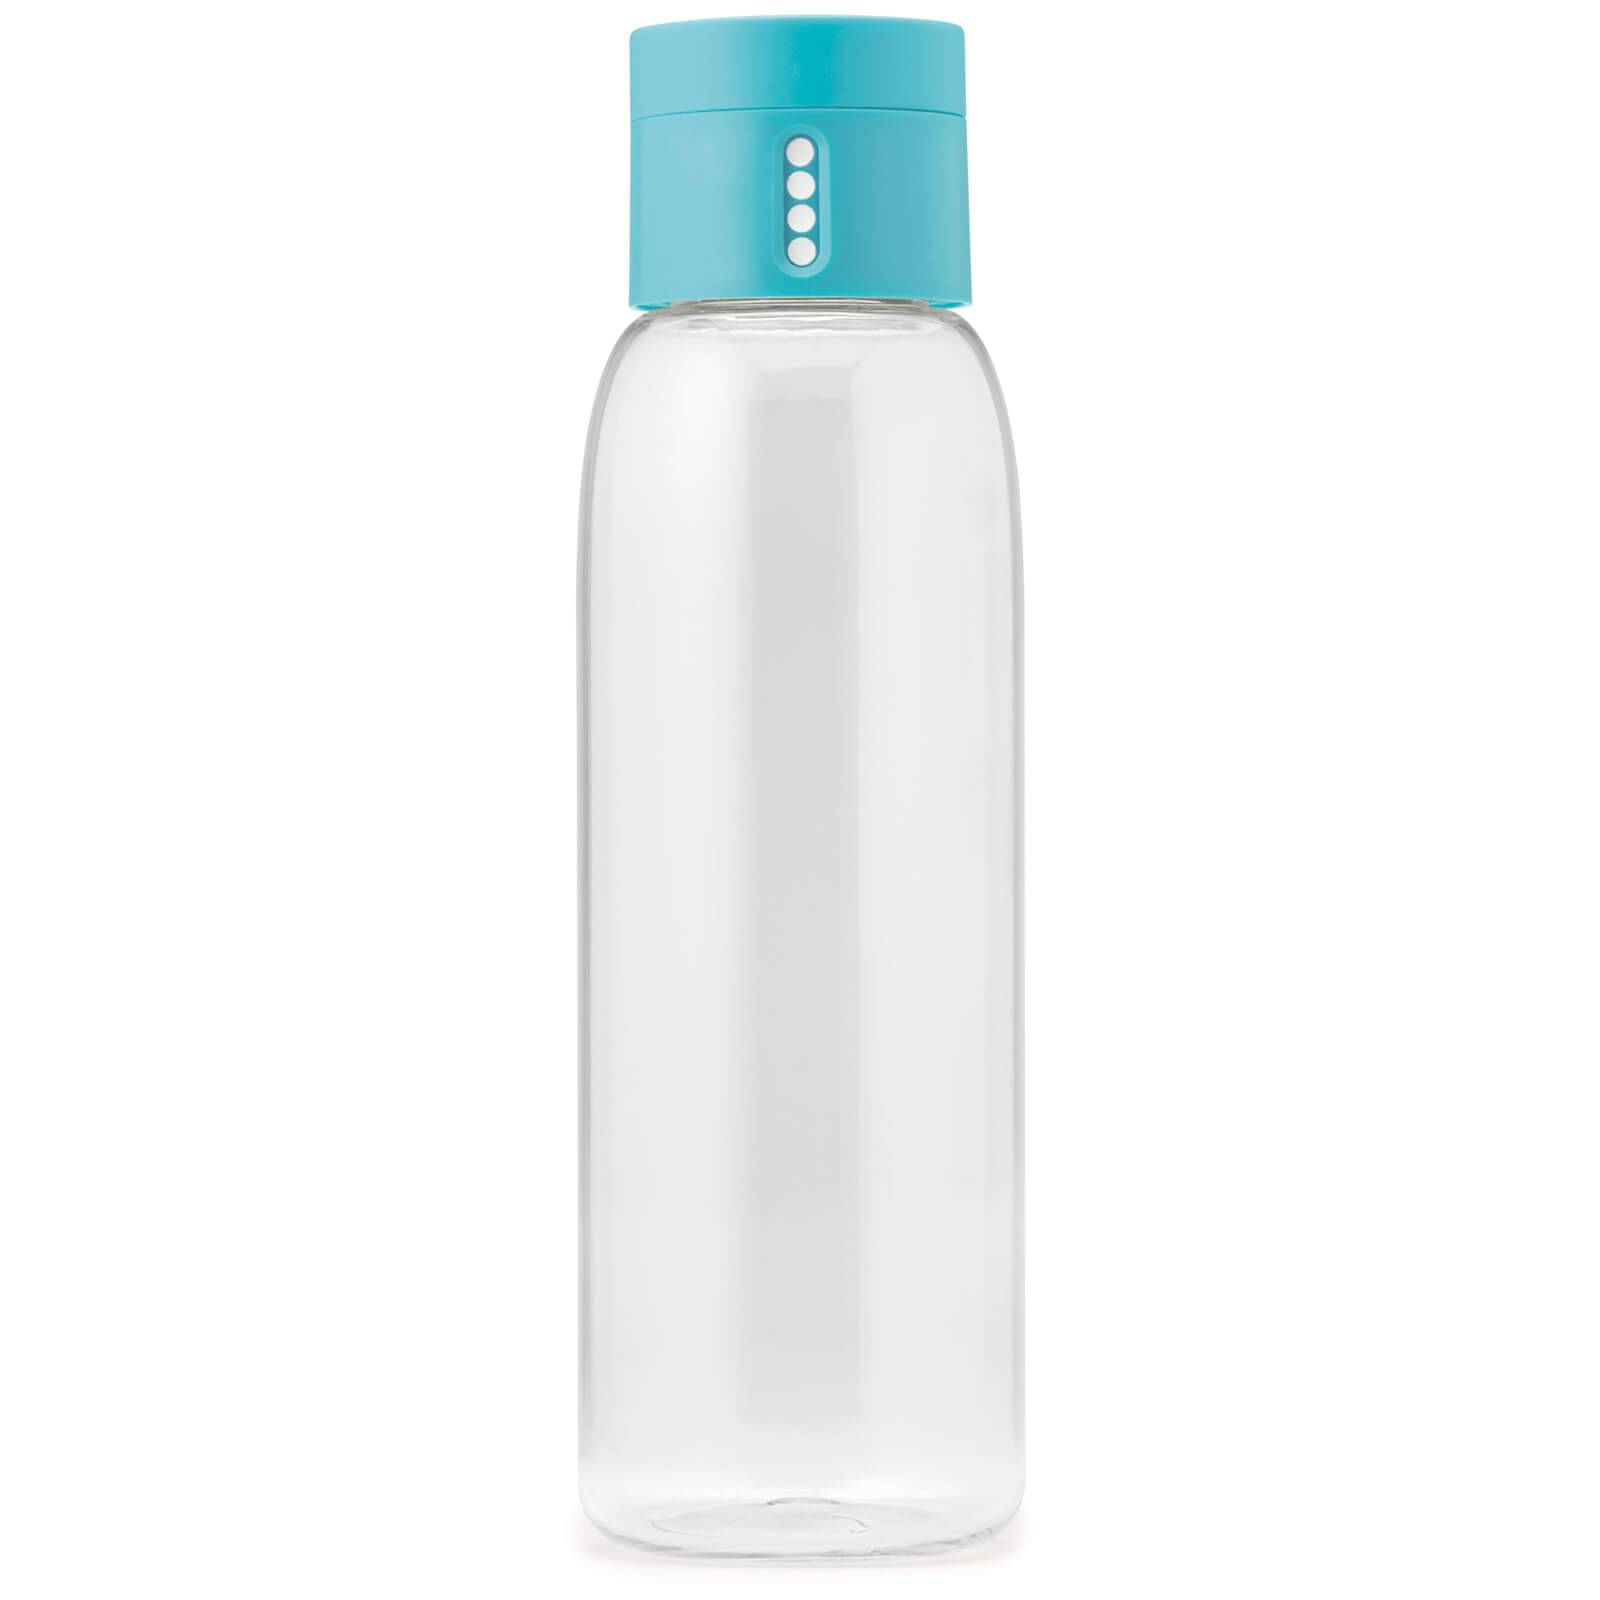 Joseph Joseph Dot Water Bottle - Turquoise